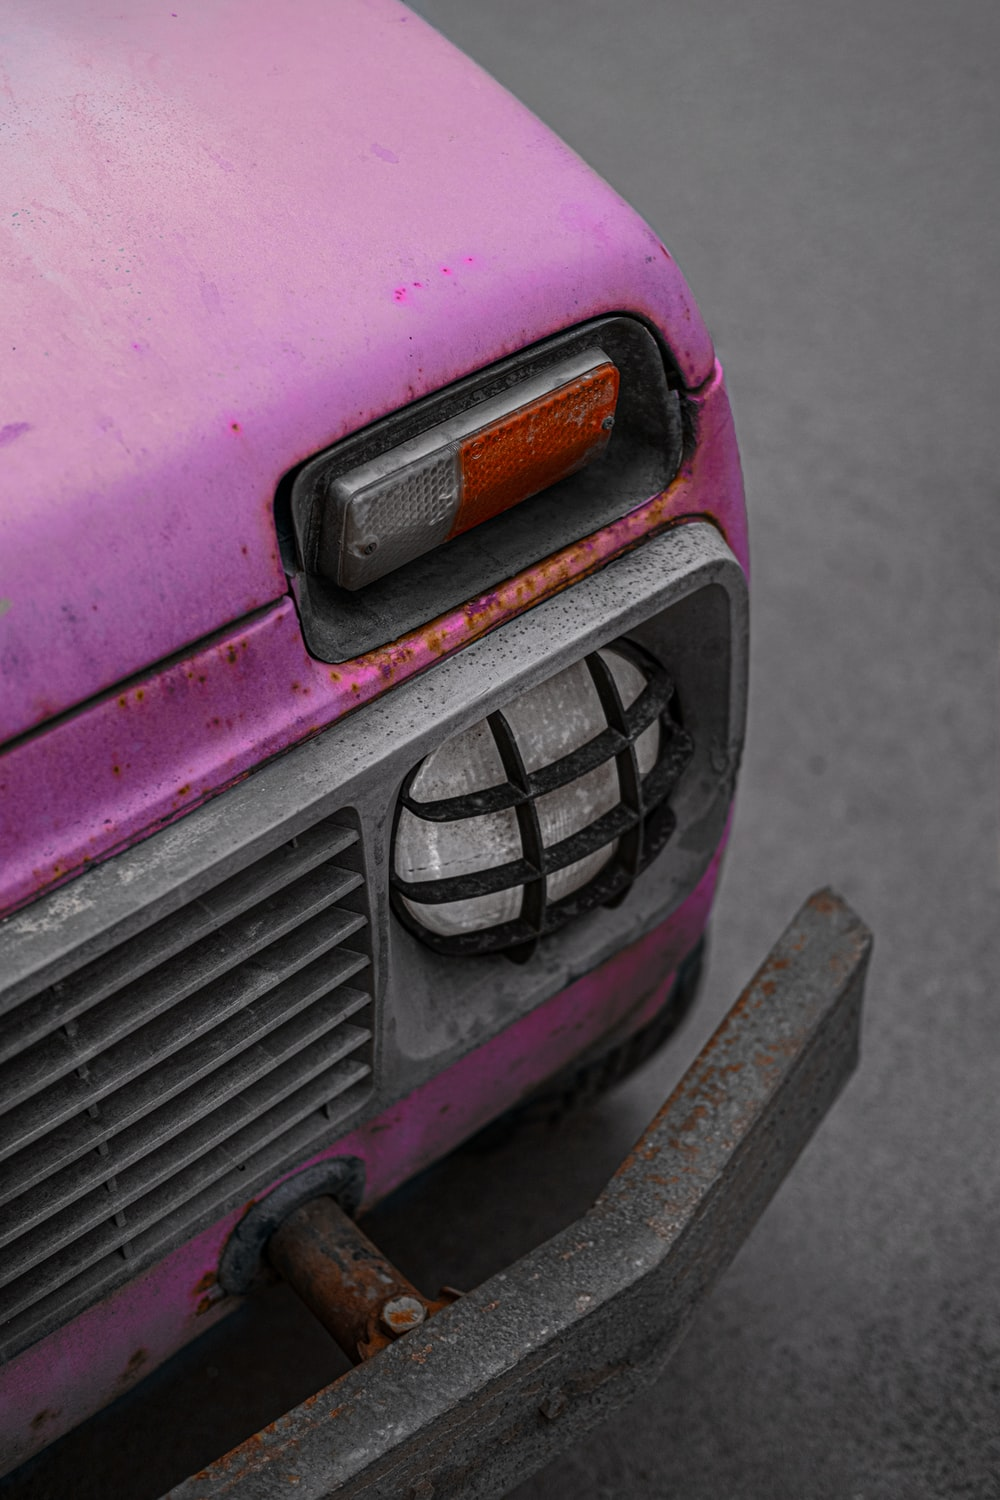 pink and black car in close up photography